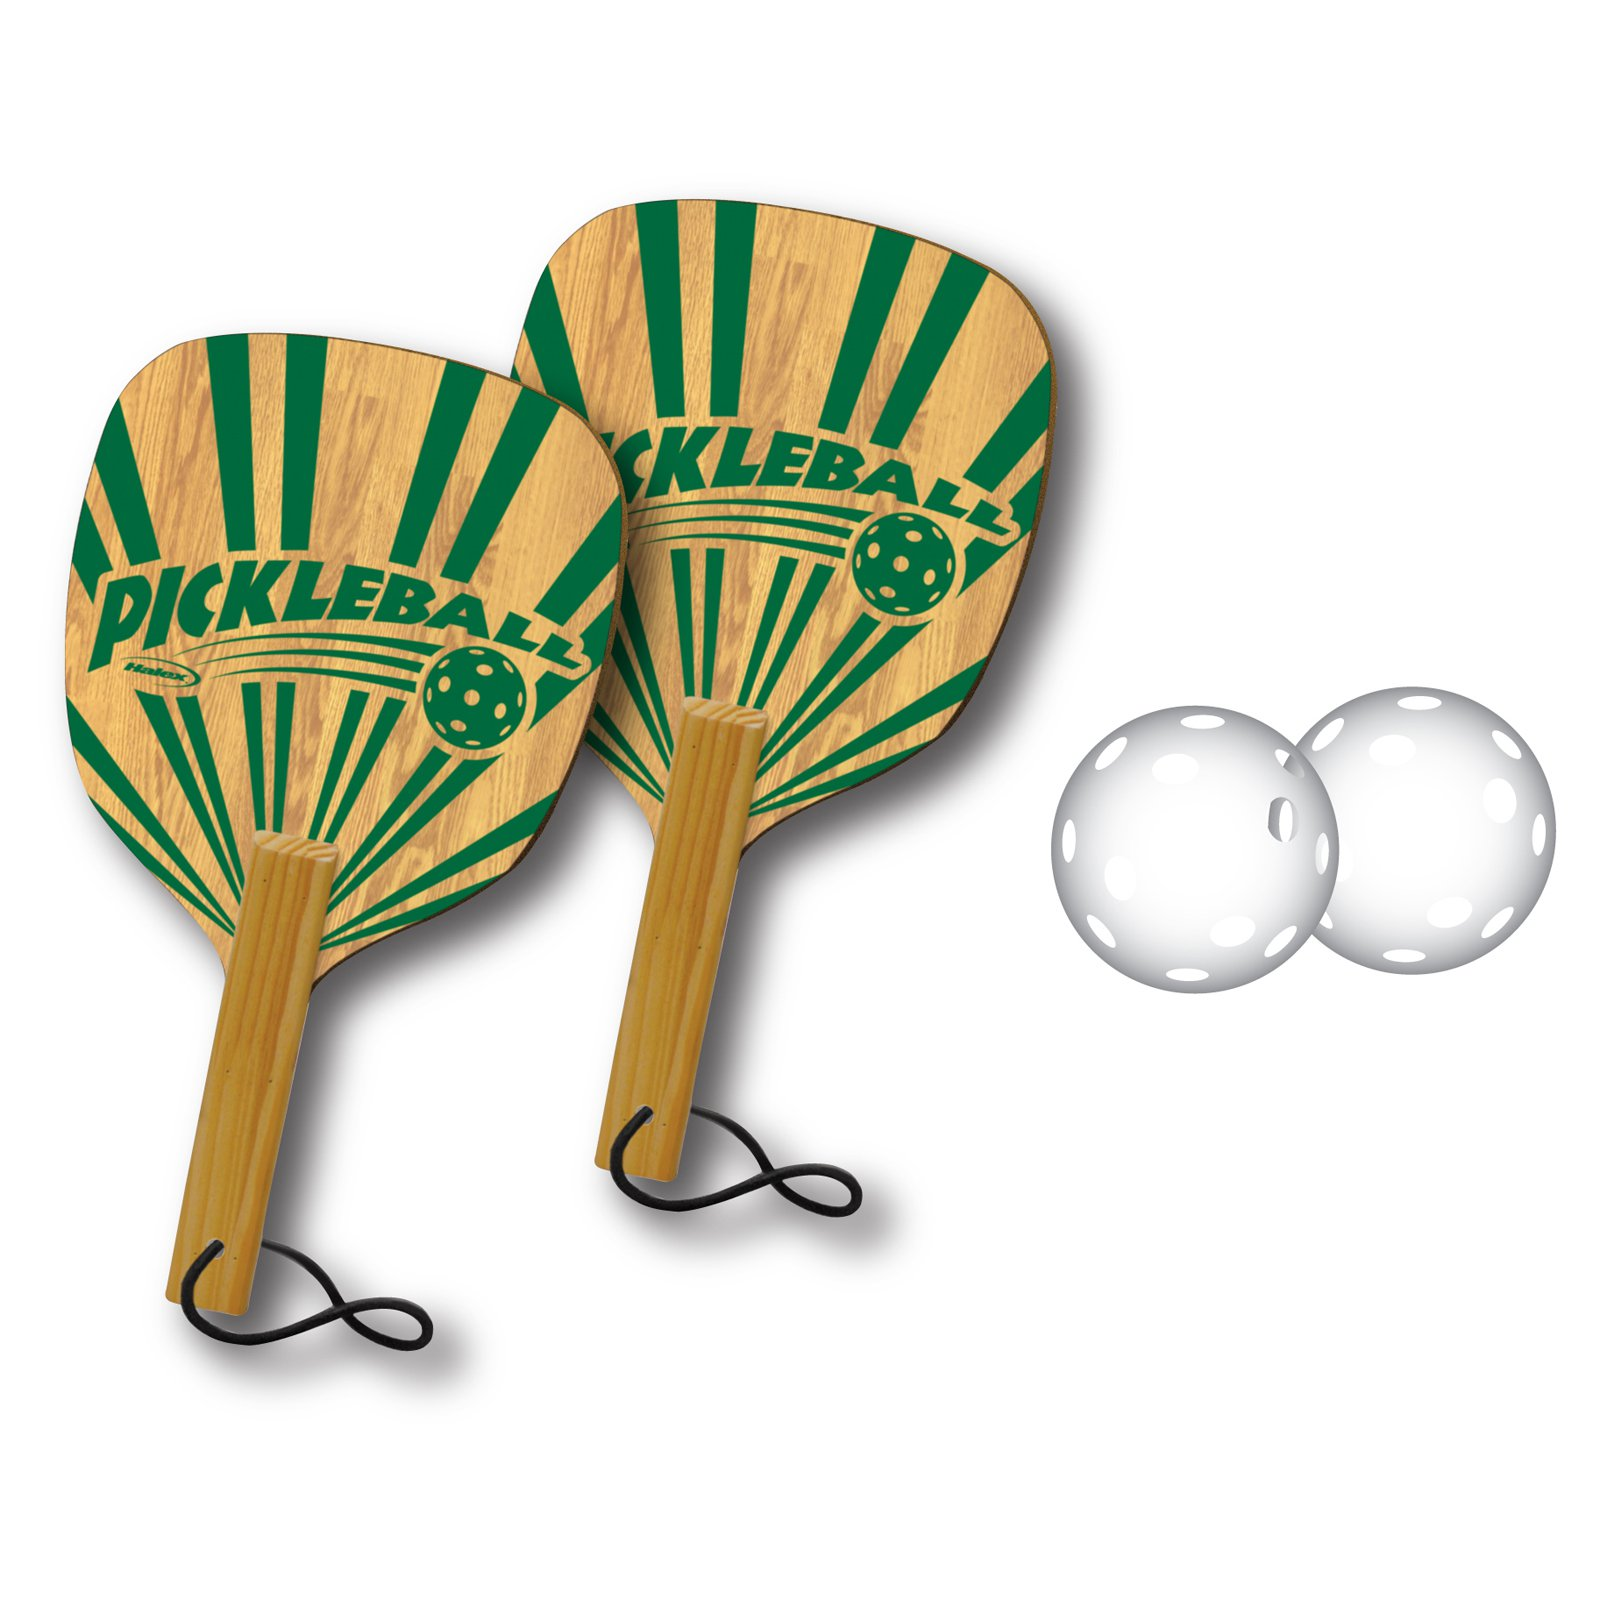 Halex 2-Player Pickleball Set with Paddles and Balls